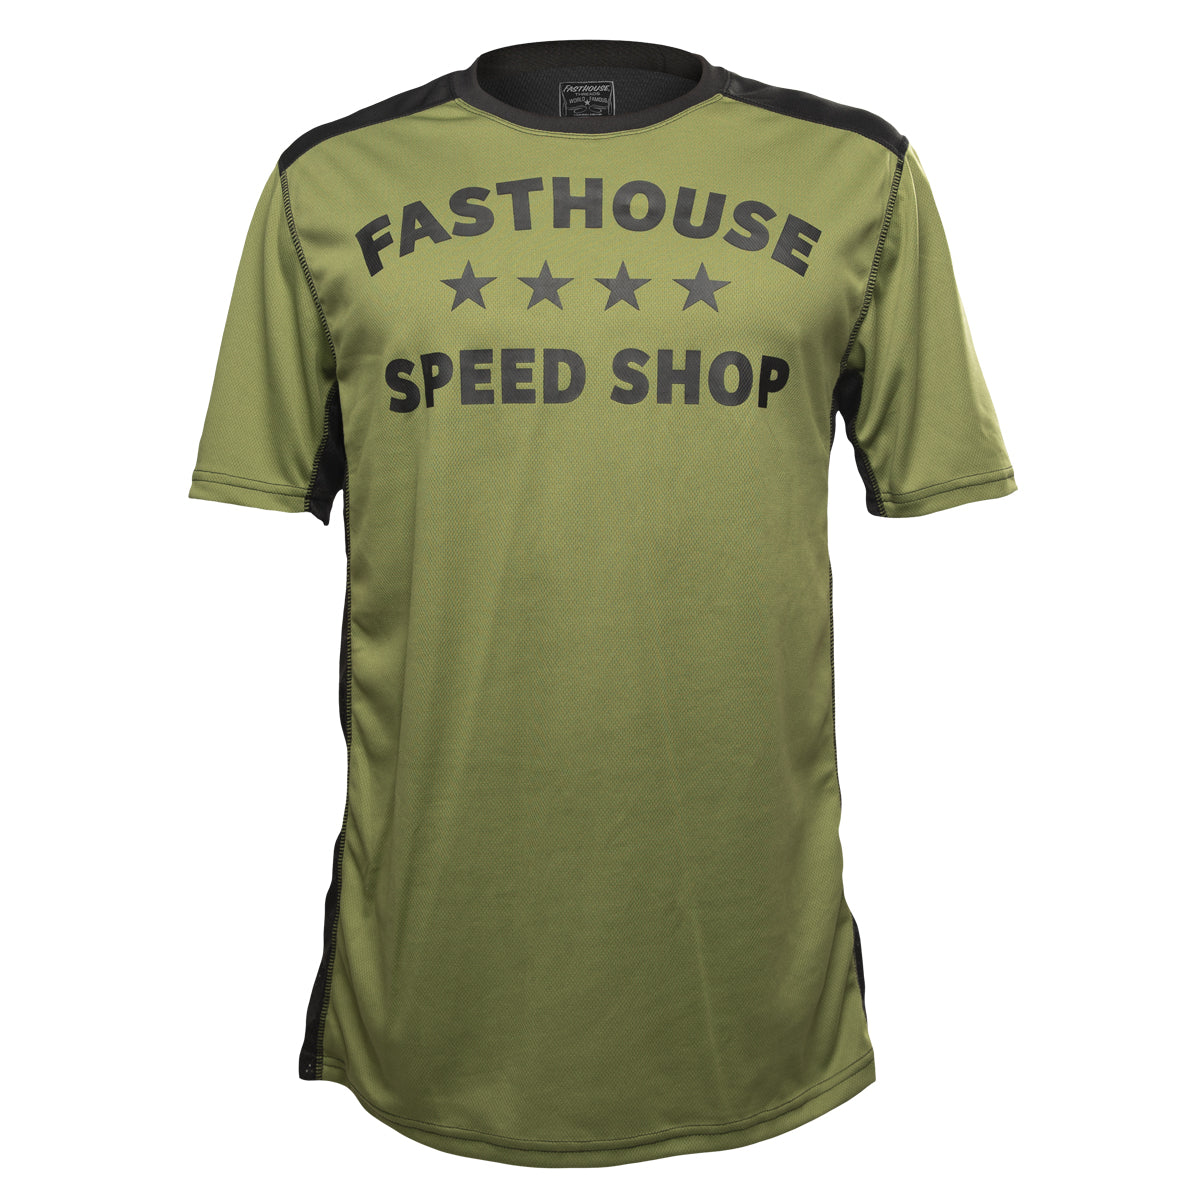 Fasthouse - Fastline Star SS MTB - Olive